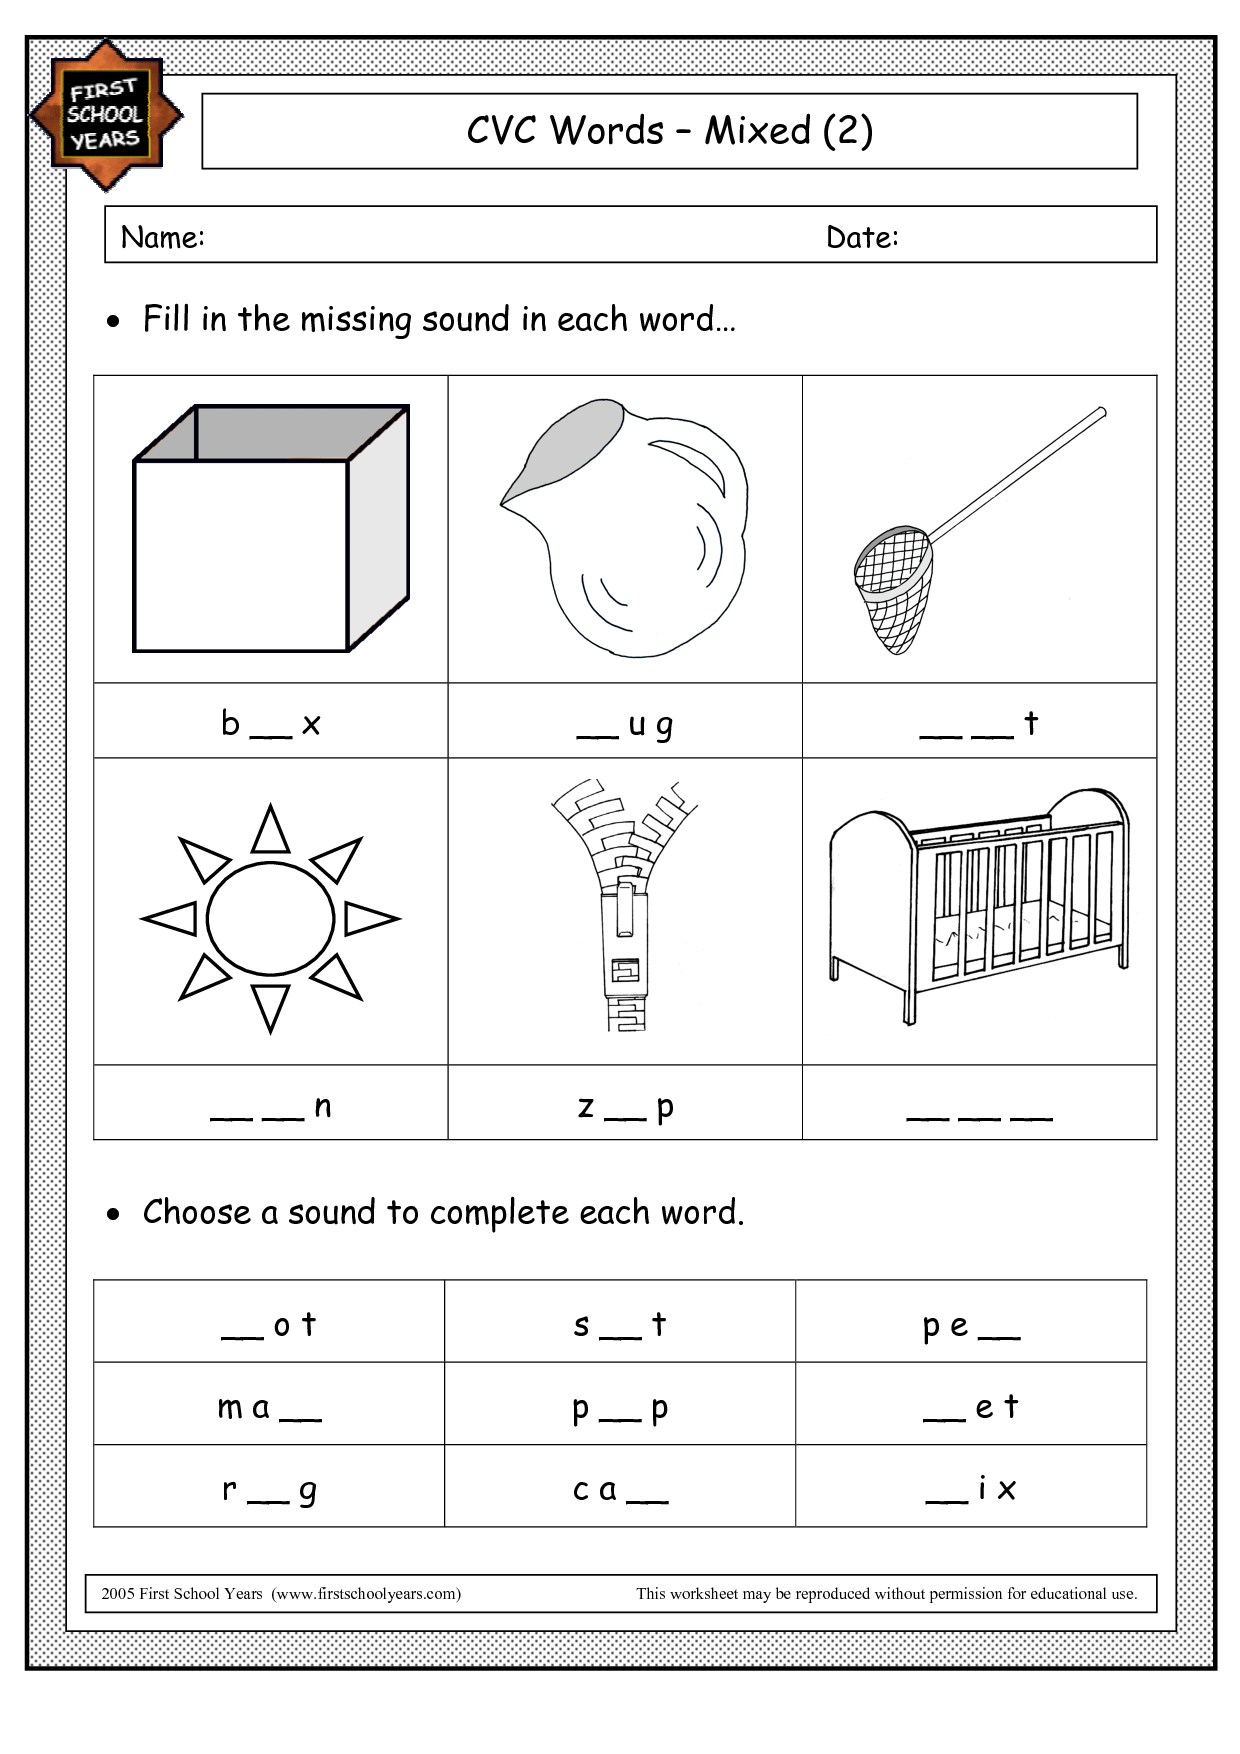 Kindergarten Worksheet Advanced | Printable Worksheets and ...